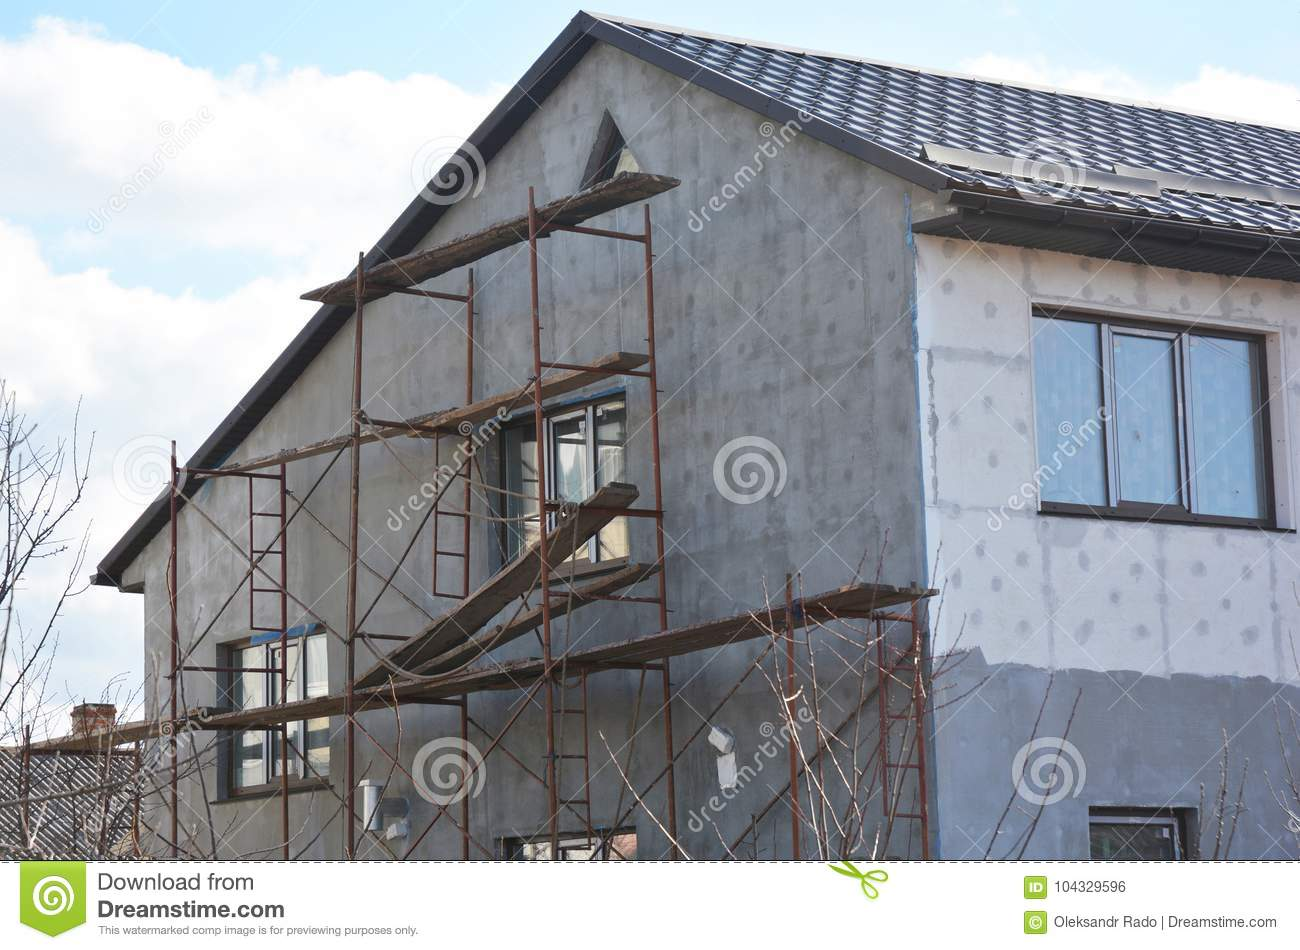 Painting Plastering Stucco And Insulate Exterior House Wall Facade Thermal Insulation And Painting Repair Works Stock Photo Image Of Home Facade 104329596